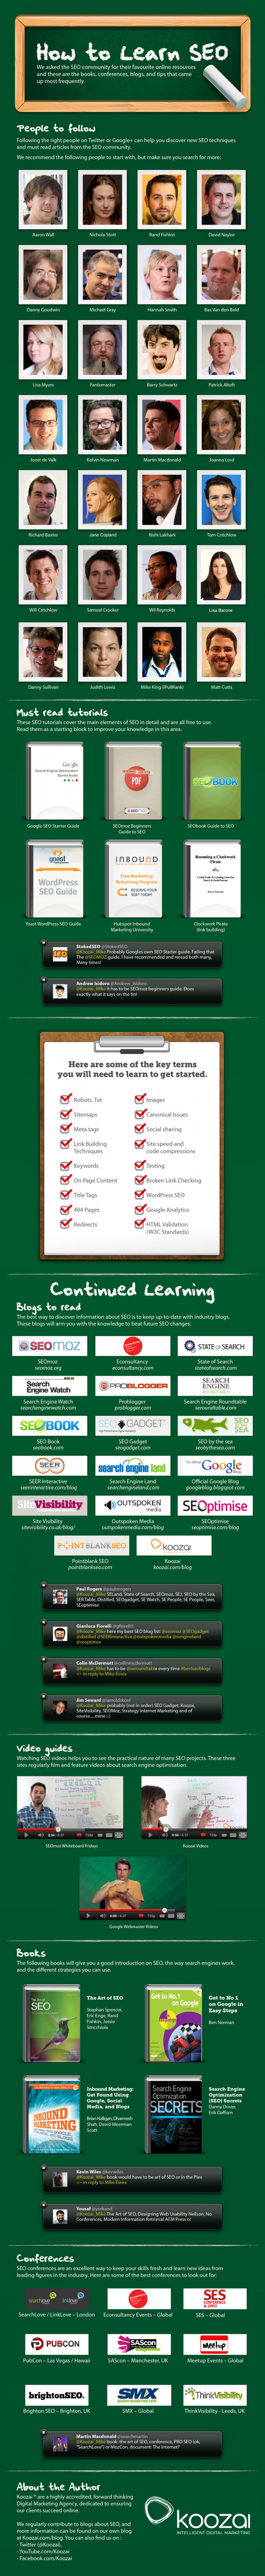 94 Easy Ways to Learn SEO Infographic